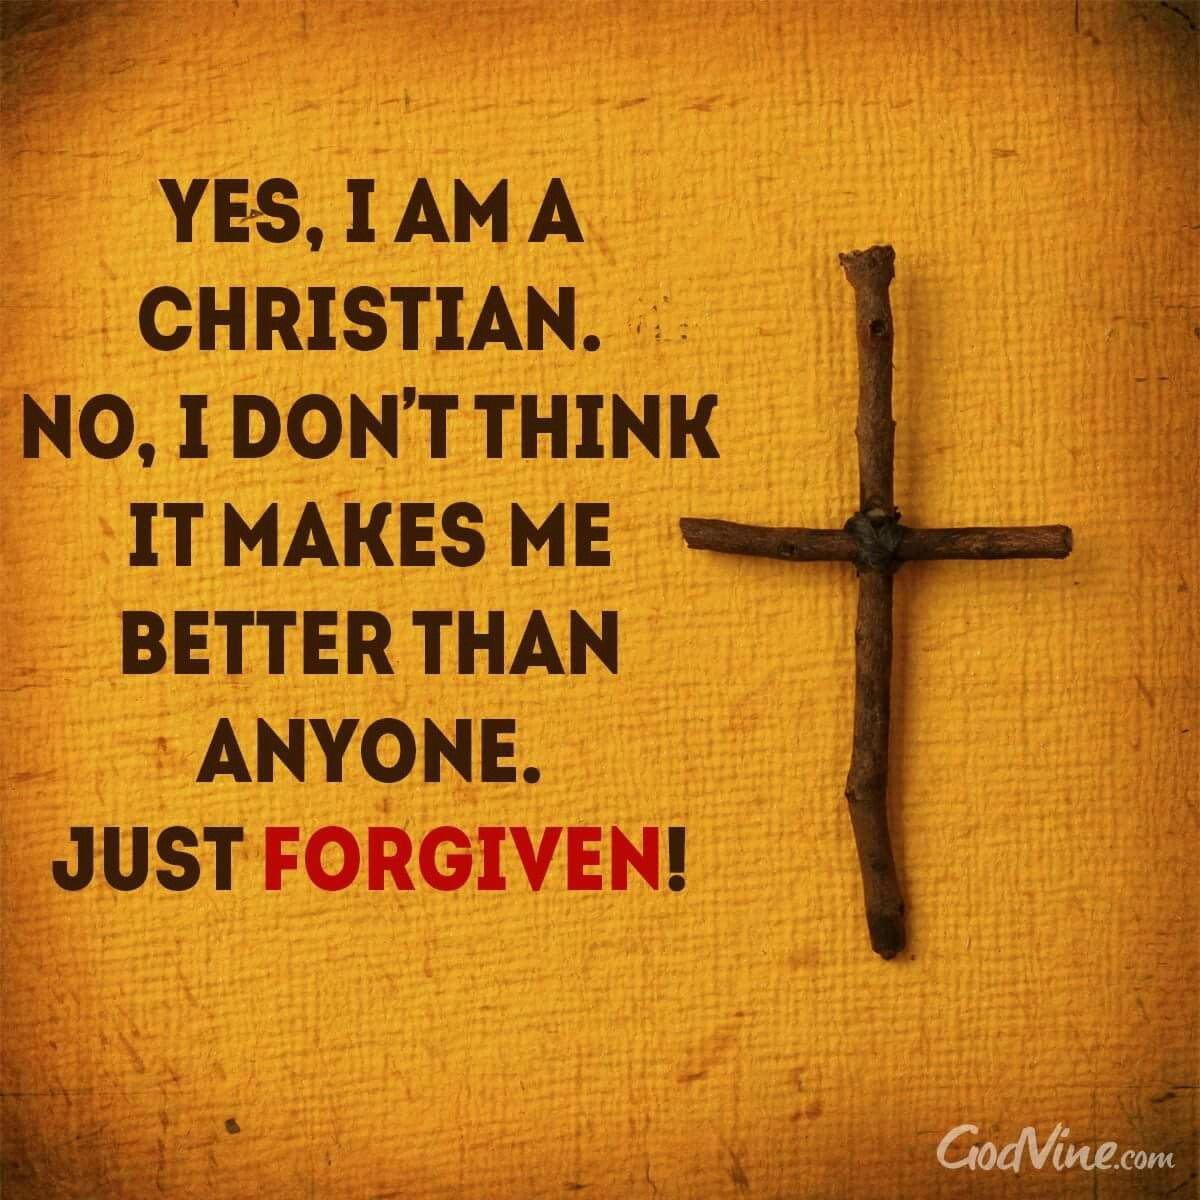 Religious Quotes About Faith Pinpatty Snyder On For The Home  Pinterest  Christianity